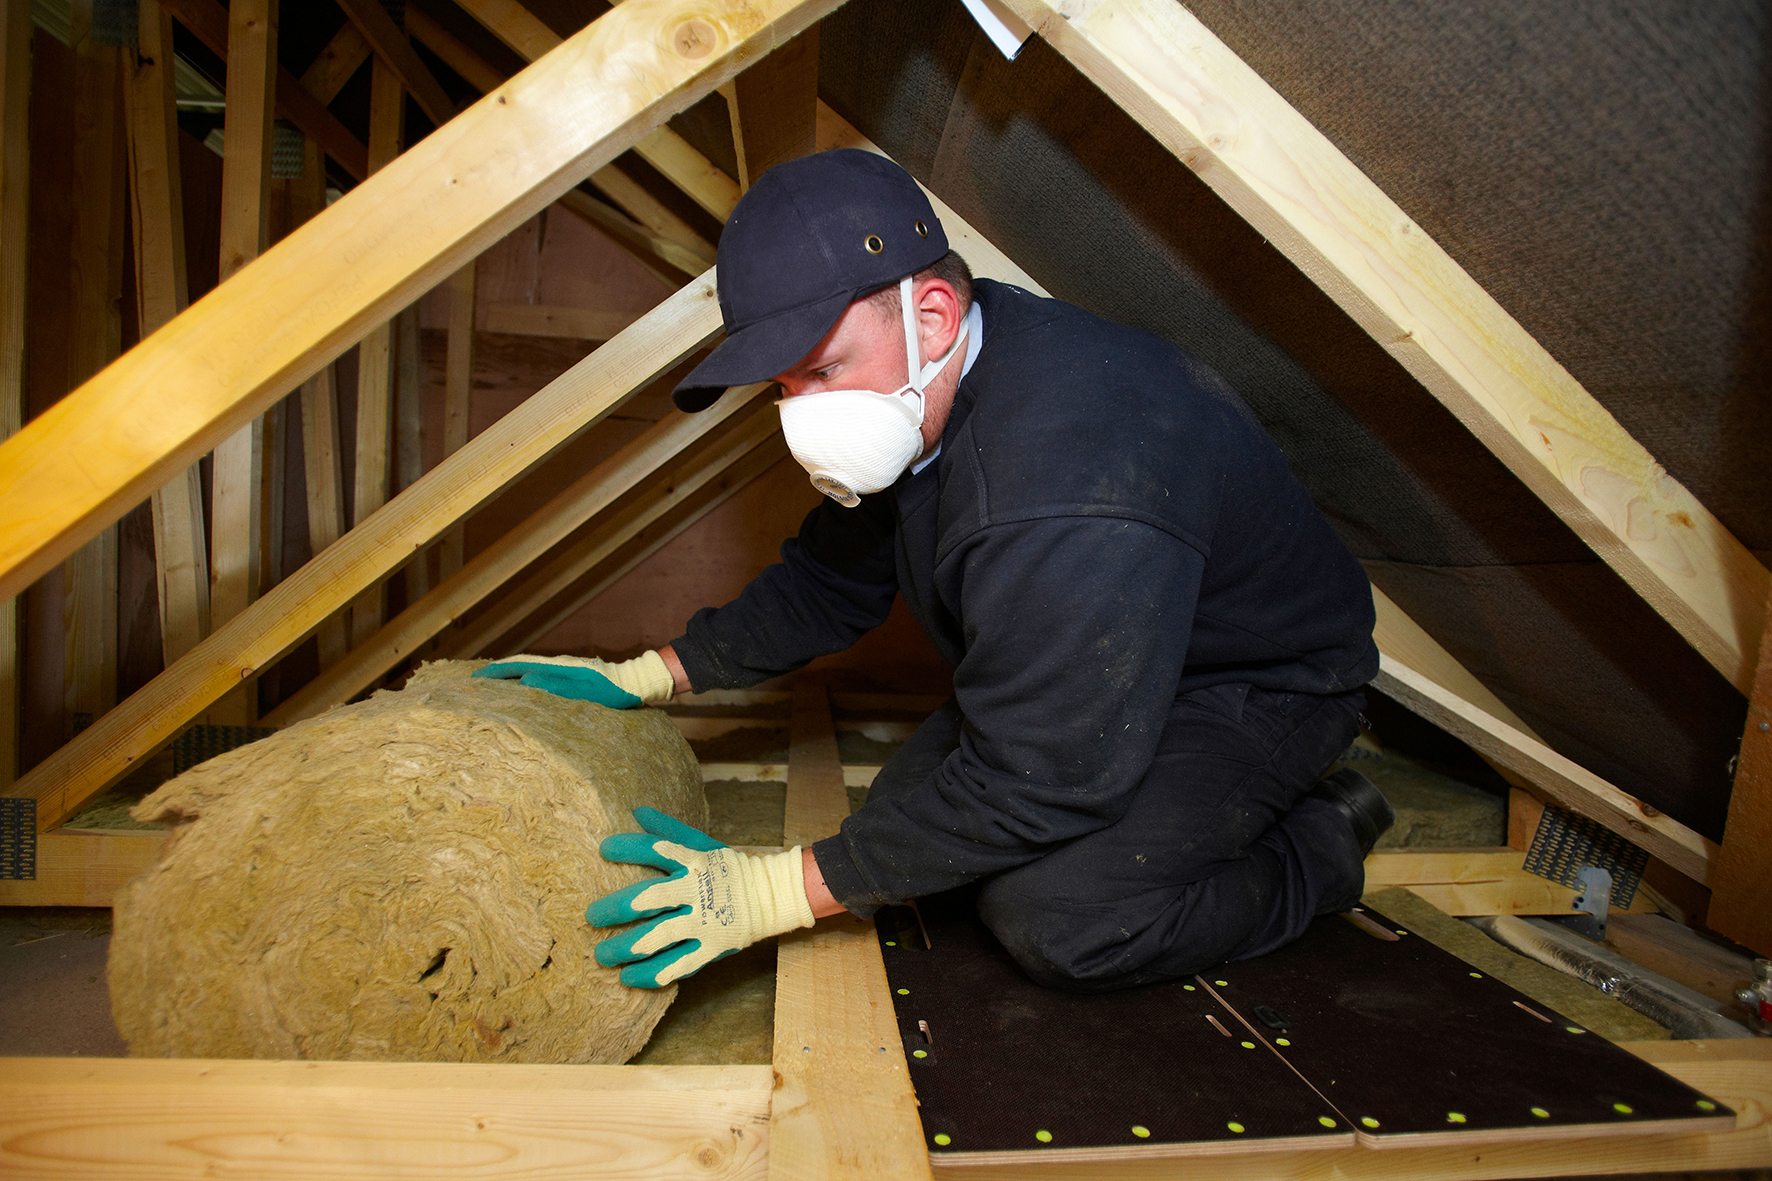 Loft insulation - Man installing loft insulation in a loft